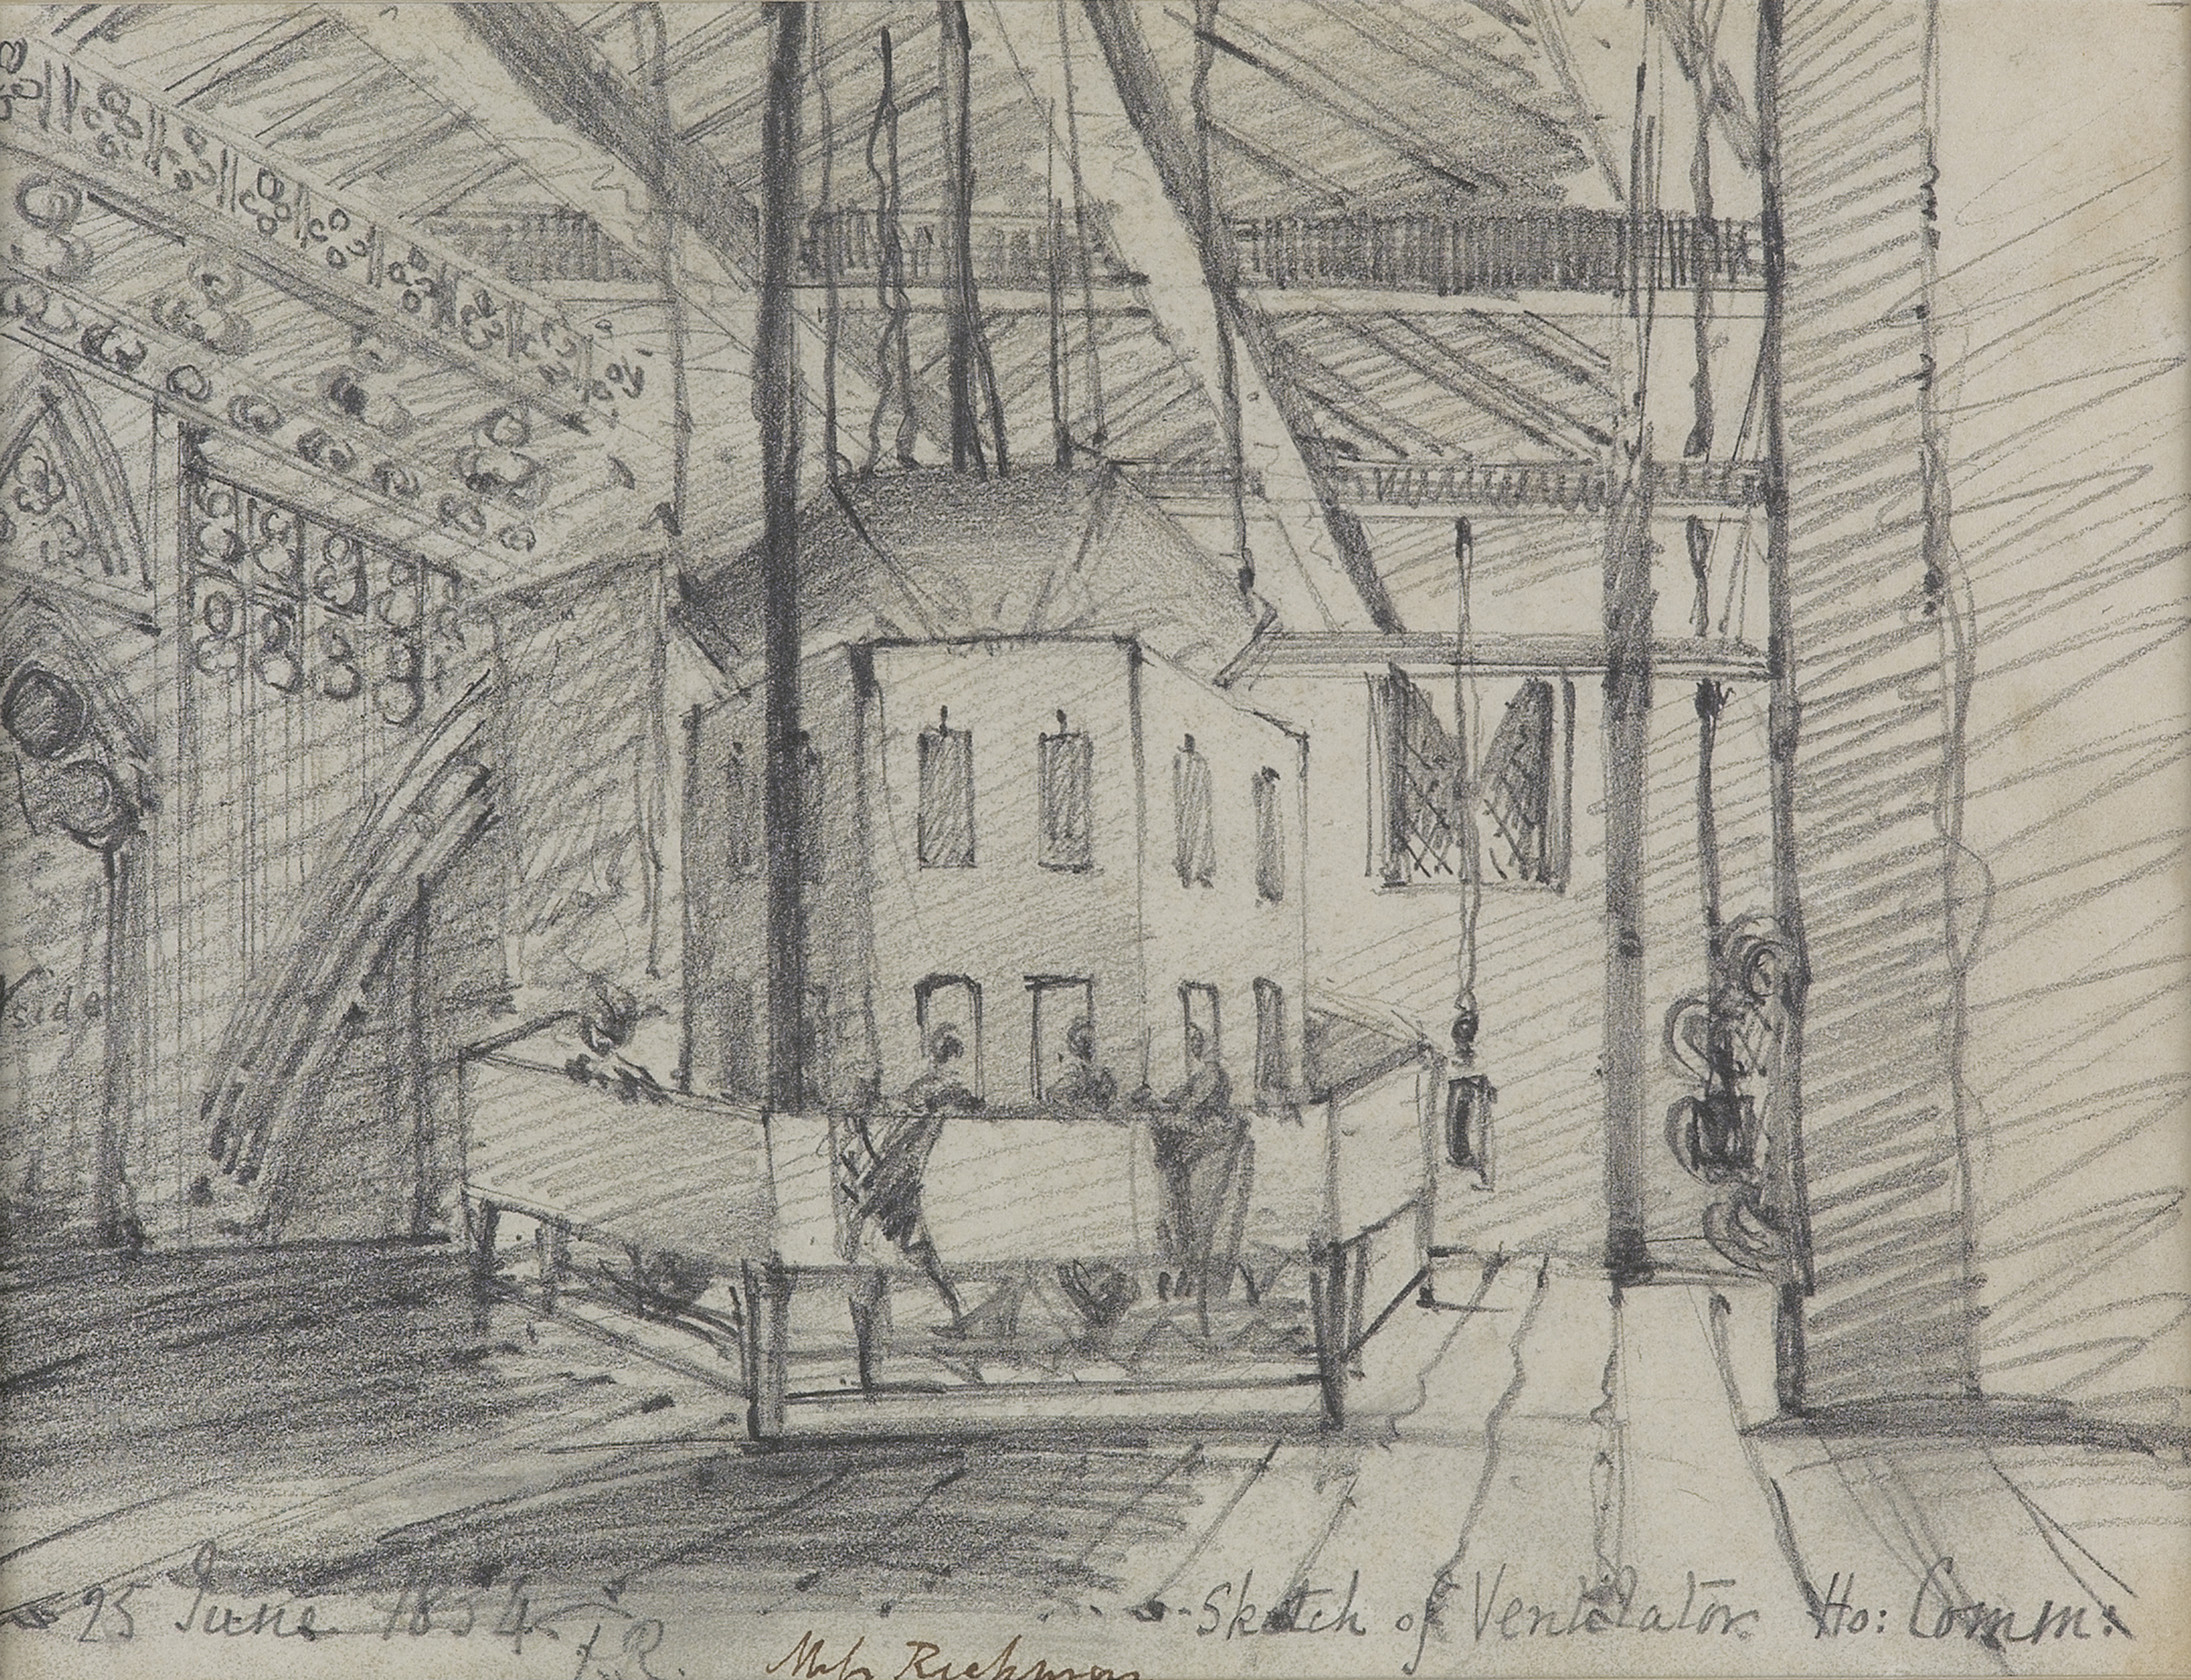 Sketch of Ventilator, House of Commons by Frances Rickman, 1834